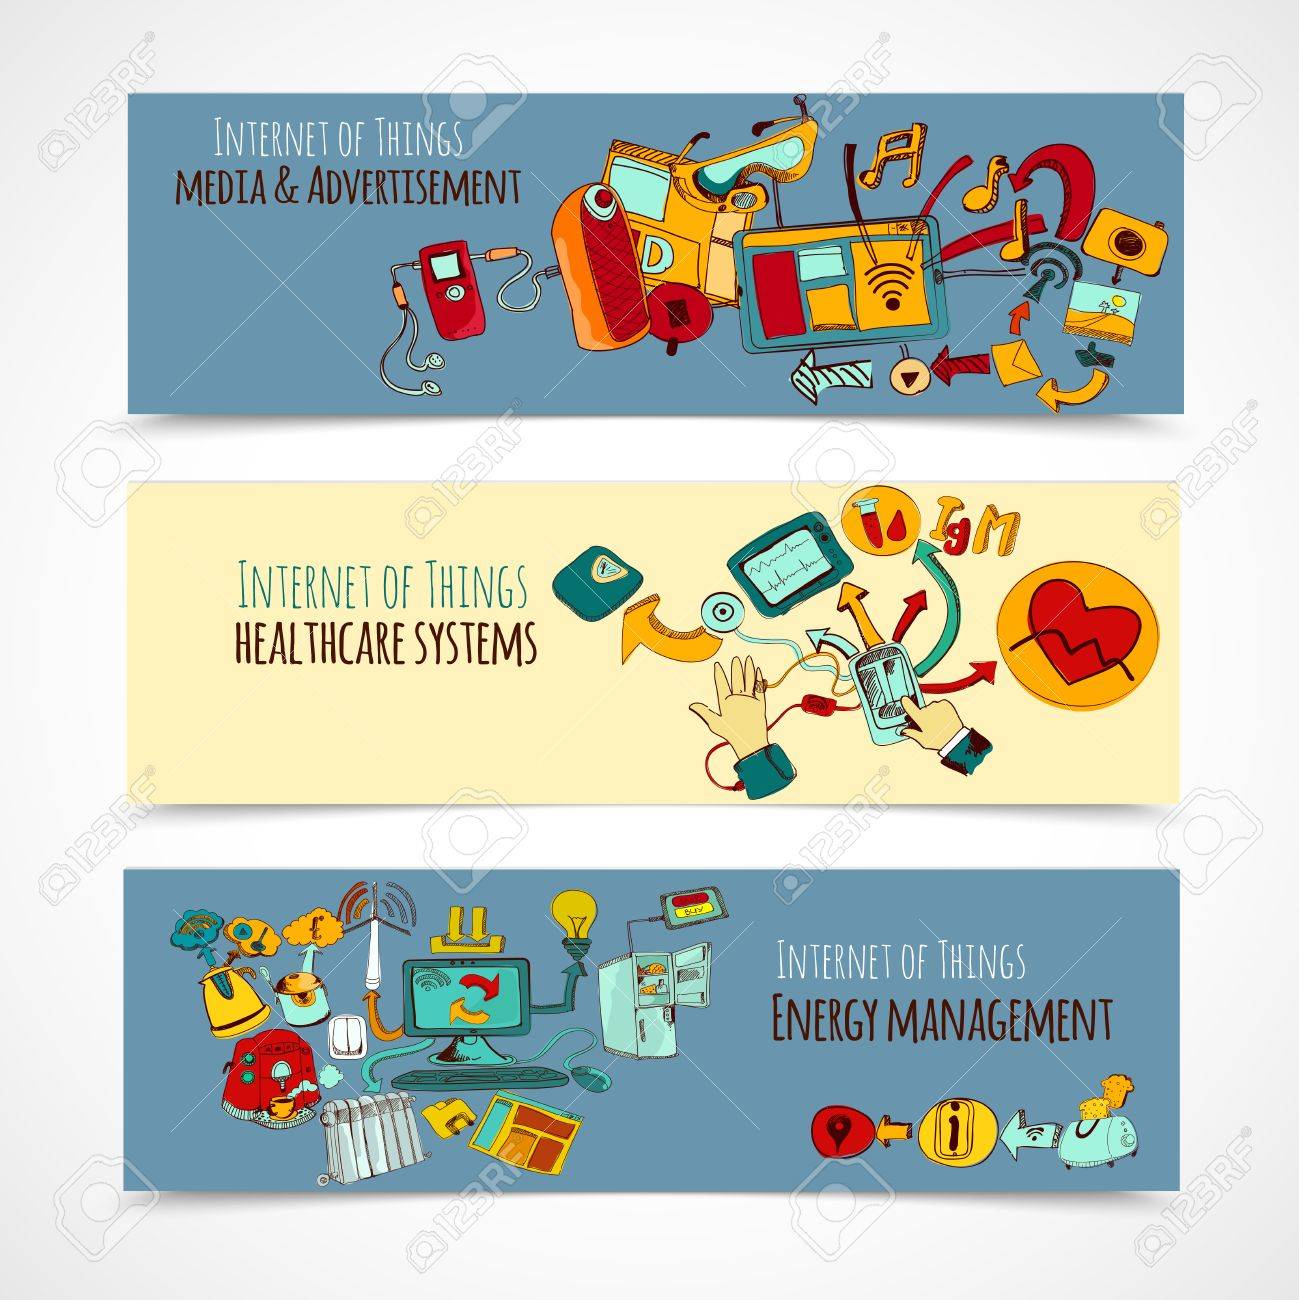 Internet Of Things Horizontal Banners Set With Media Advertisement Healthcare Systems Energy Management Sketch Elements Isolated